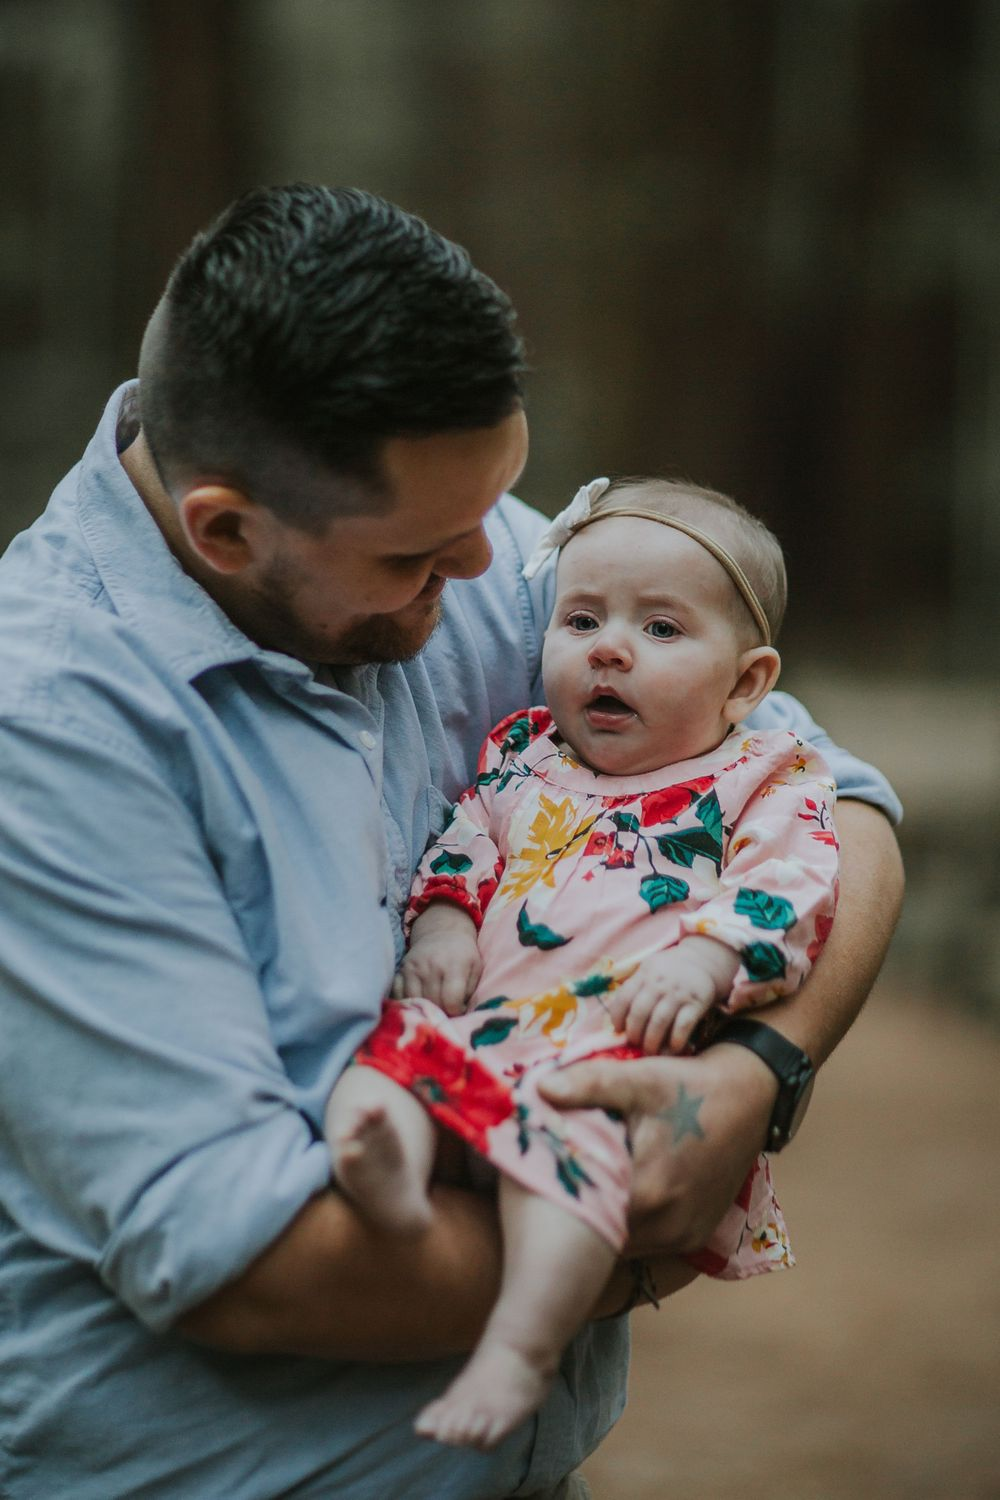 rebecca skidgel photography armstrong redwoods engagement family baby and smiling parents love happy dad